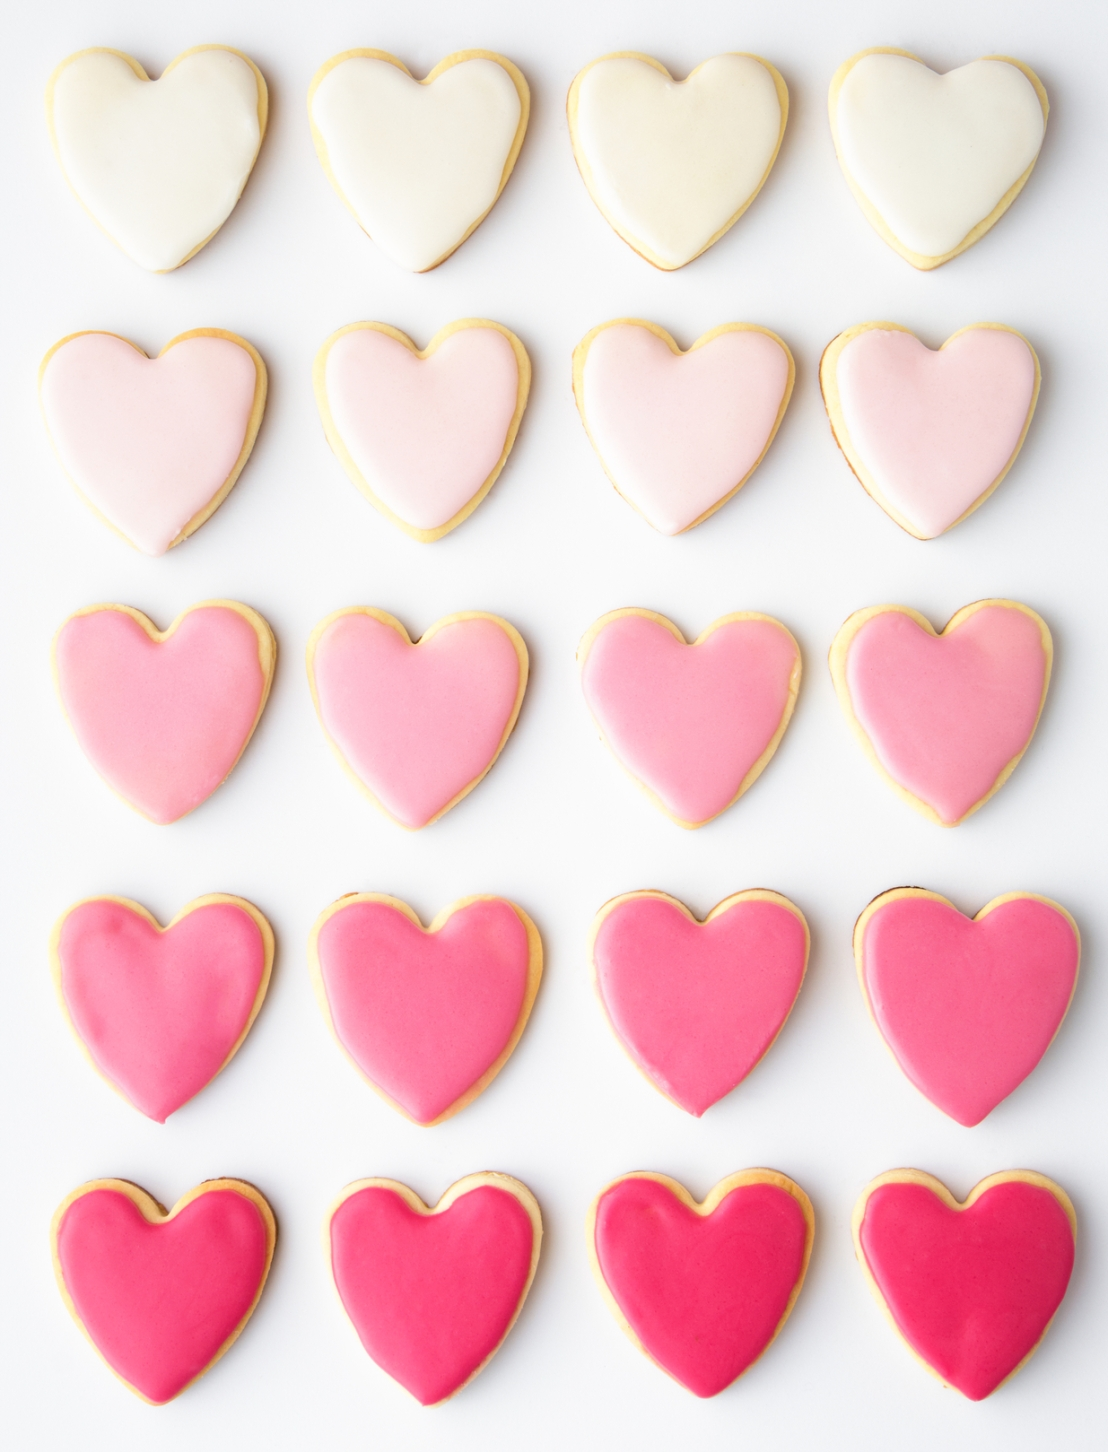 valentines-day-heart-shaped-sugar-cookies